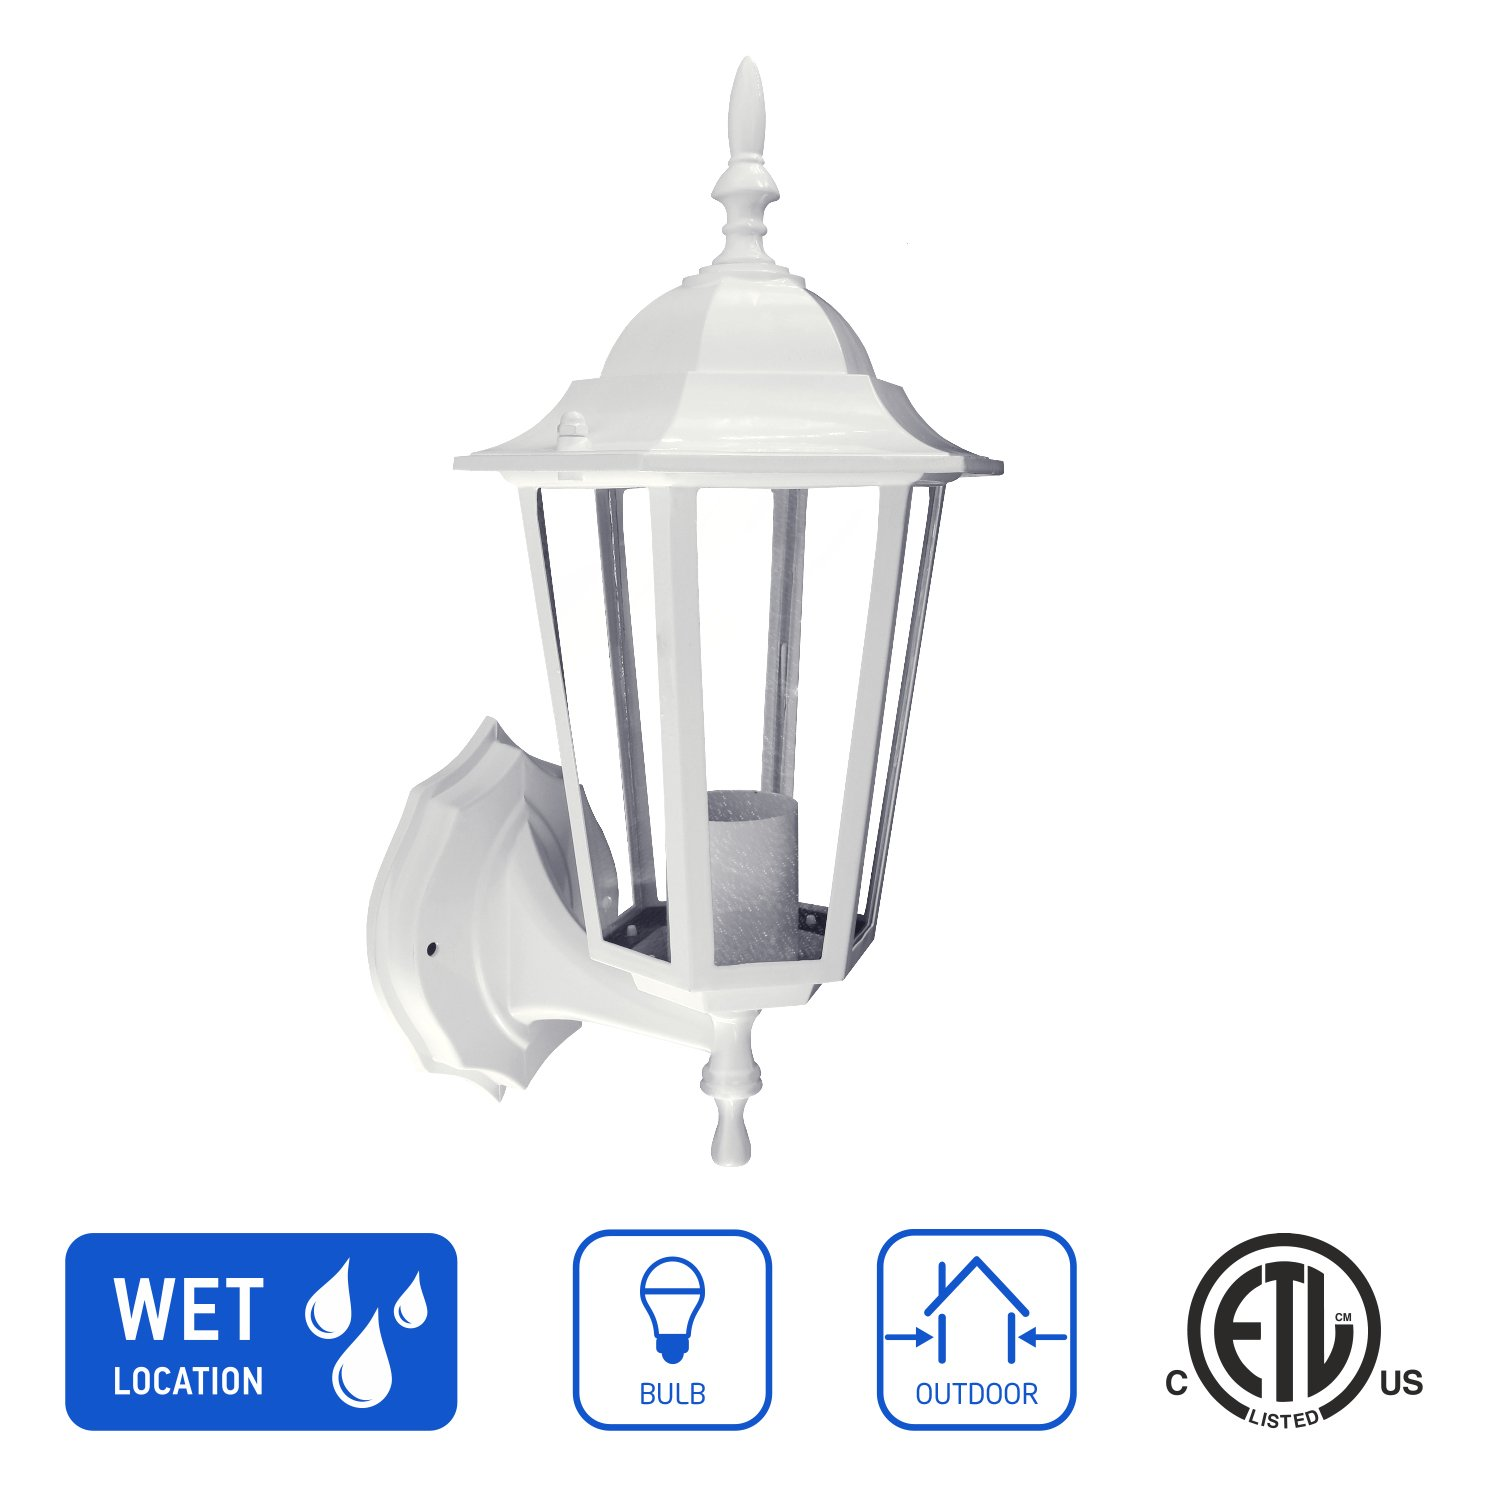 IN HOME 1-Light Outdoor Exterior Wall Up Lantern, Traditional Porch Patio Lighting Fixture L01 with One E26 Base, Water-proof, White Cast aluminum Housing, Clear Glass Panels, ETL Listed by IN HOME